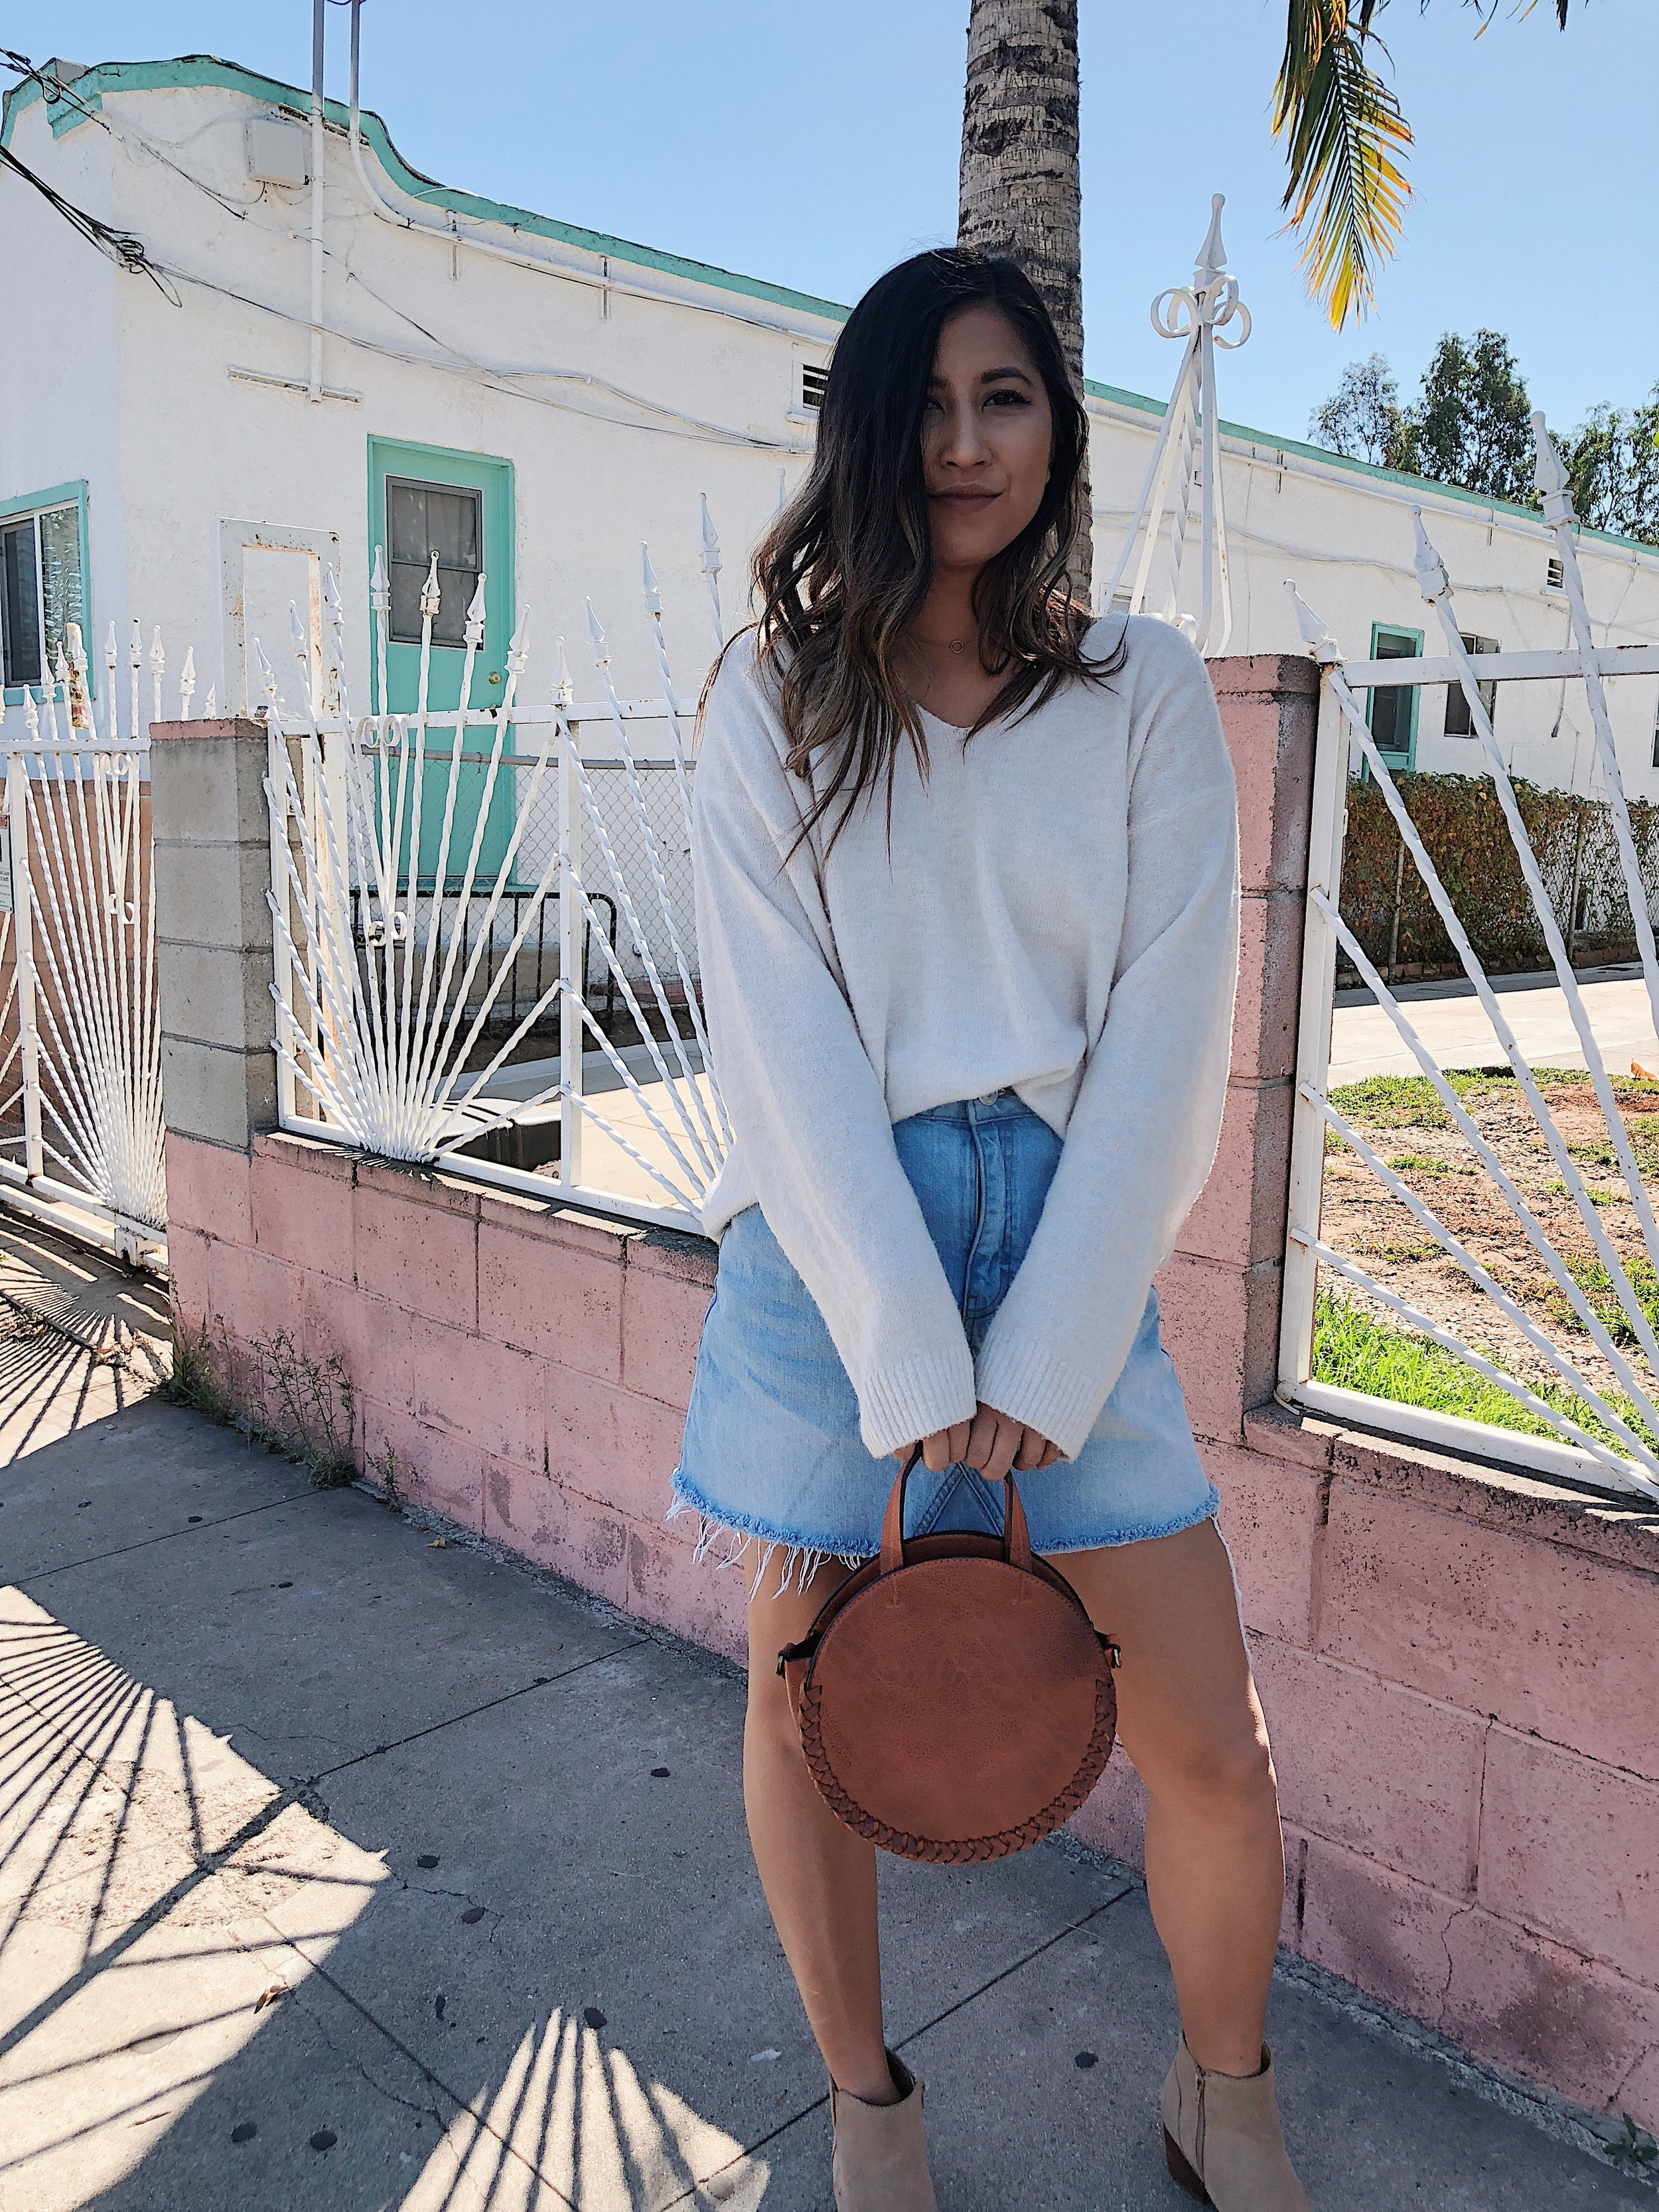 H&M oversized sweater, Urban Outfitters denim skirt Free People brown leather handbag, Aldo beige low-heel boots  Photography by Reginald Guinto